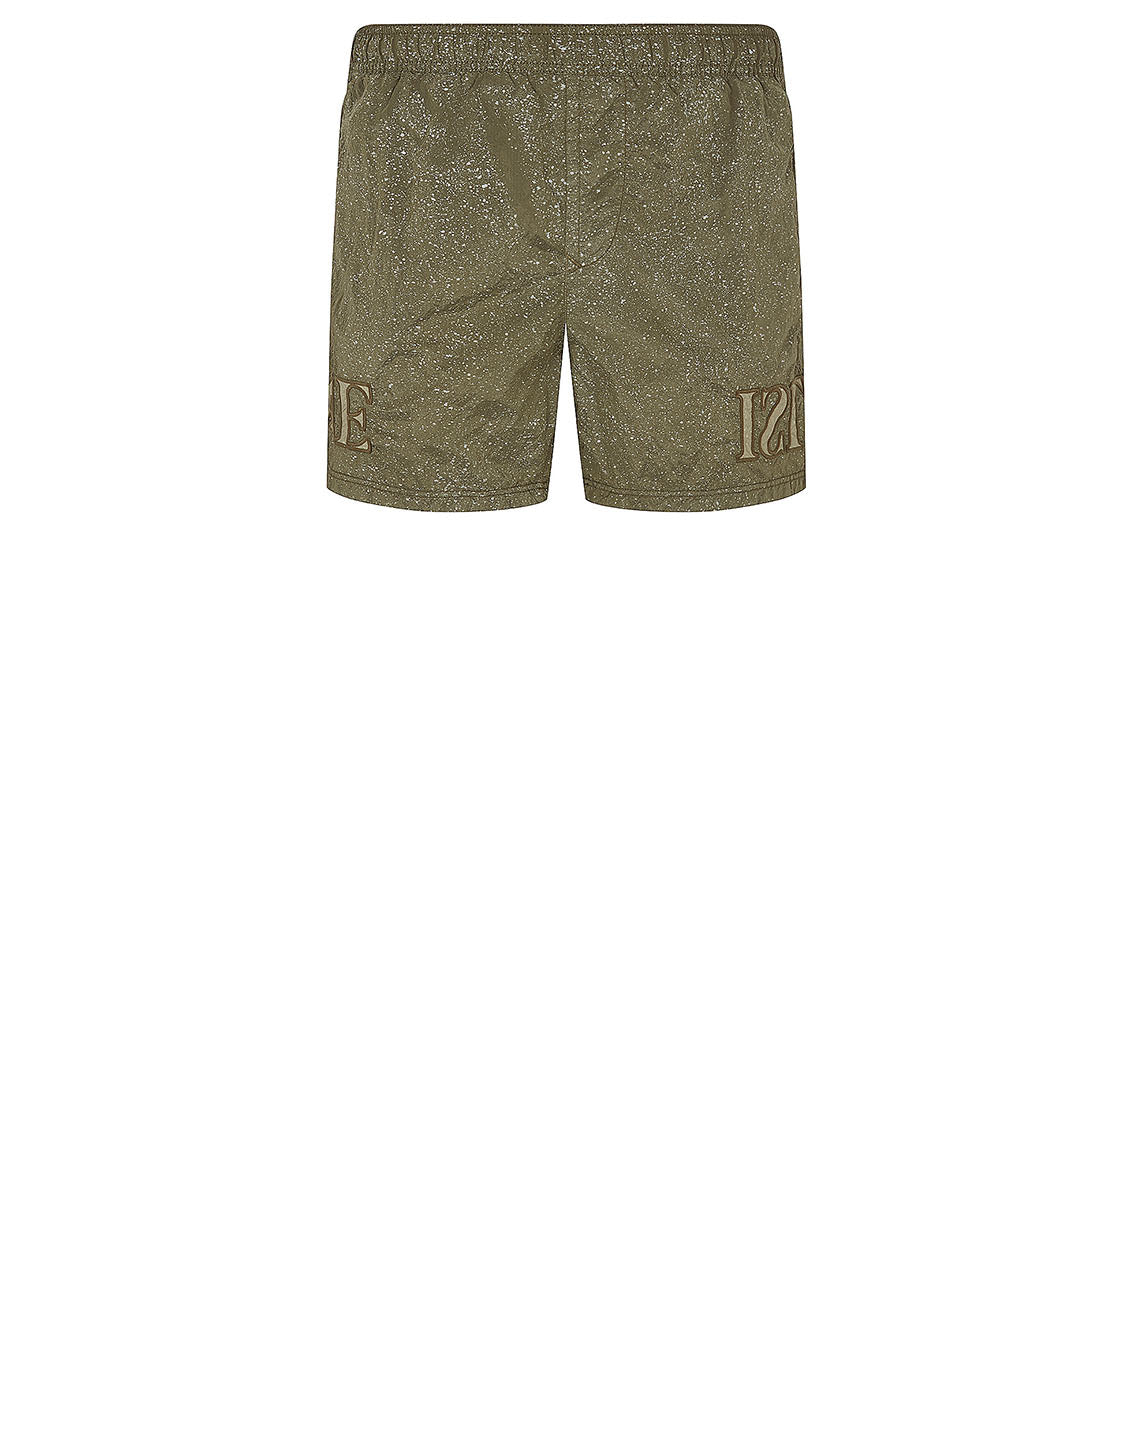 B0444 NYLON METAL-FLECK TREATMENT Shorts in Olive